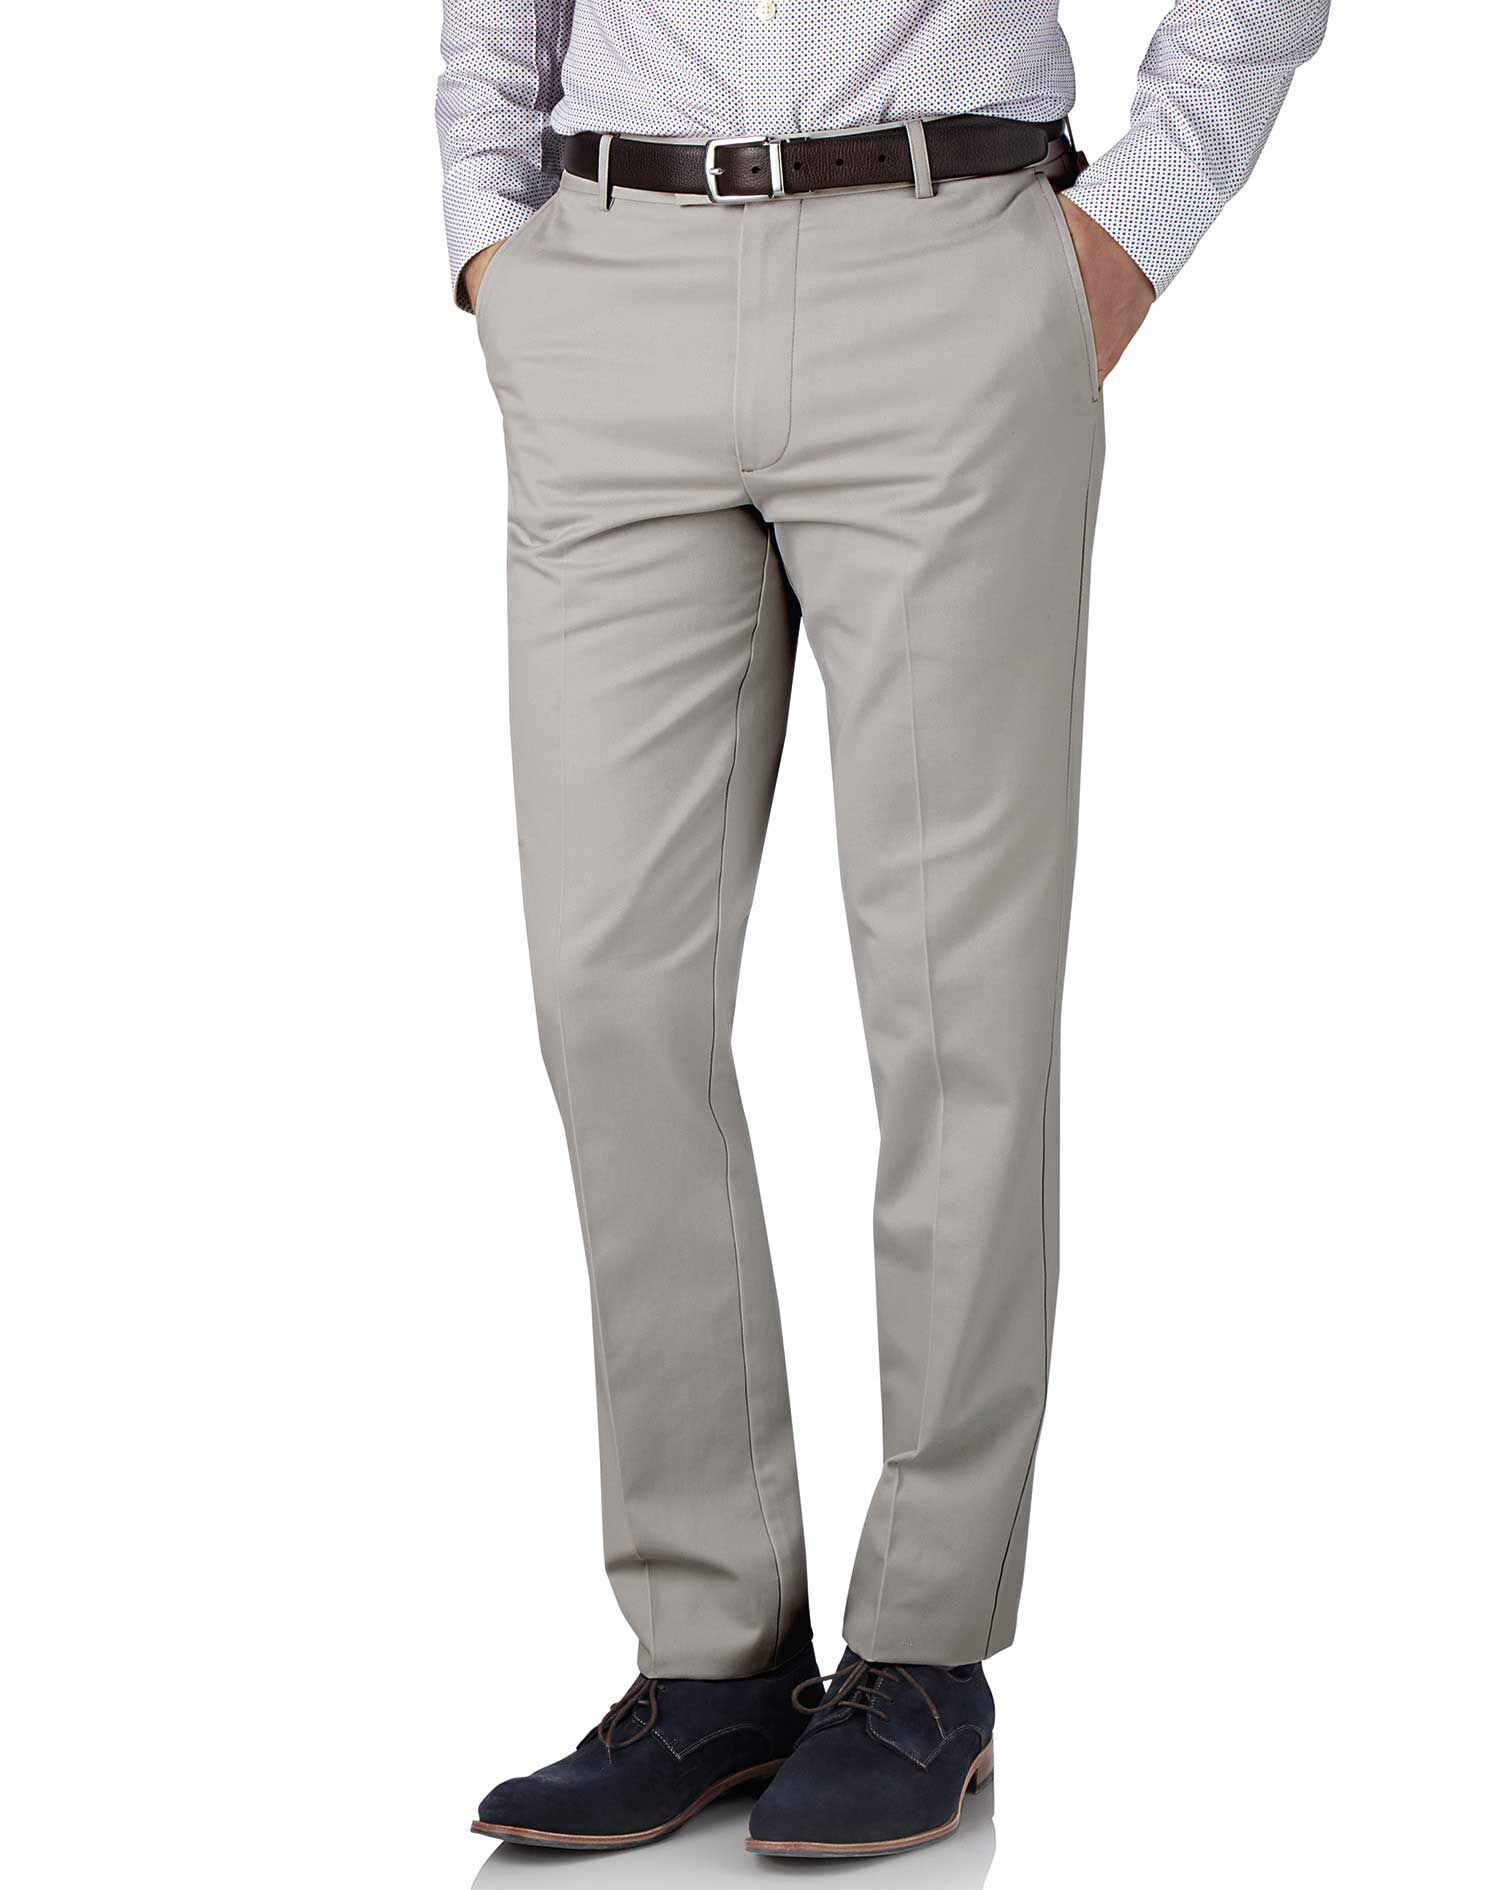 Silver Grey Slim Fit Flat Front Non-Iron Cotton Chino Trousers Size W30 L38 by Charles Tyrwhitt